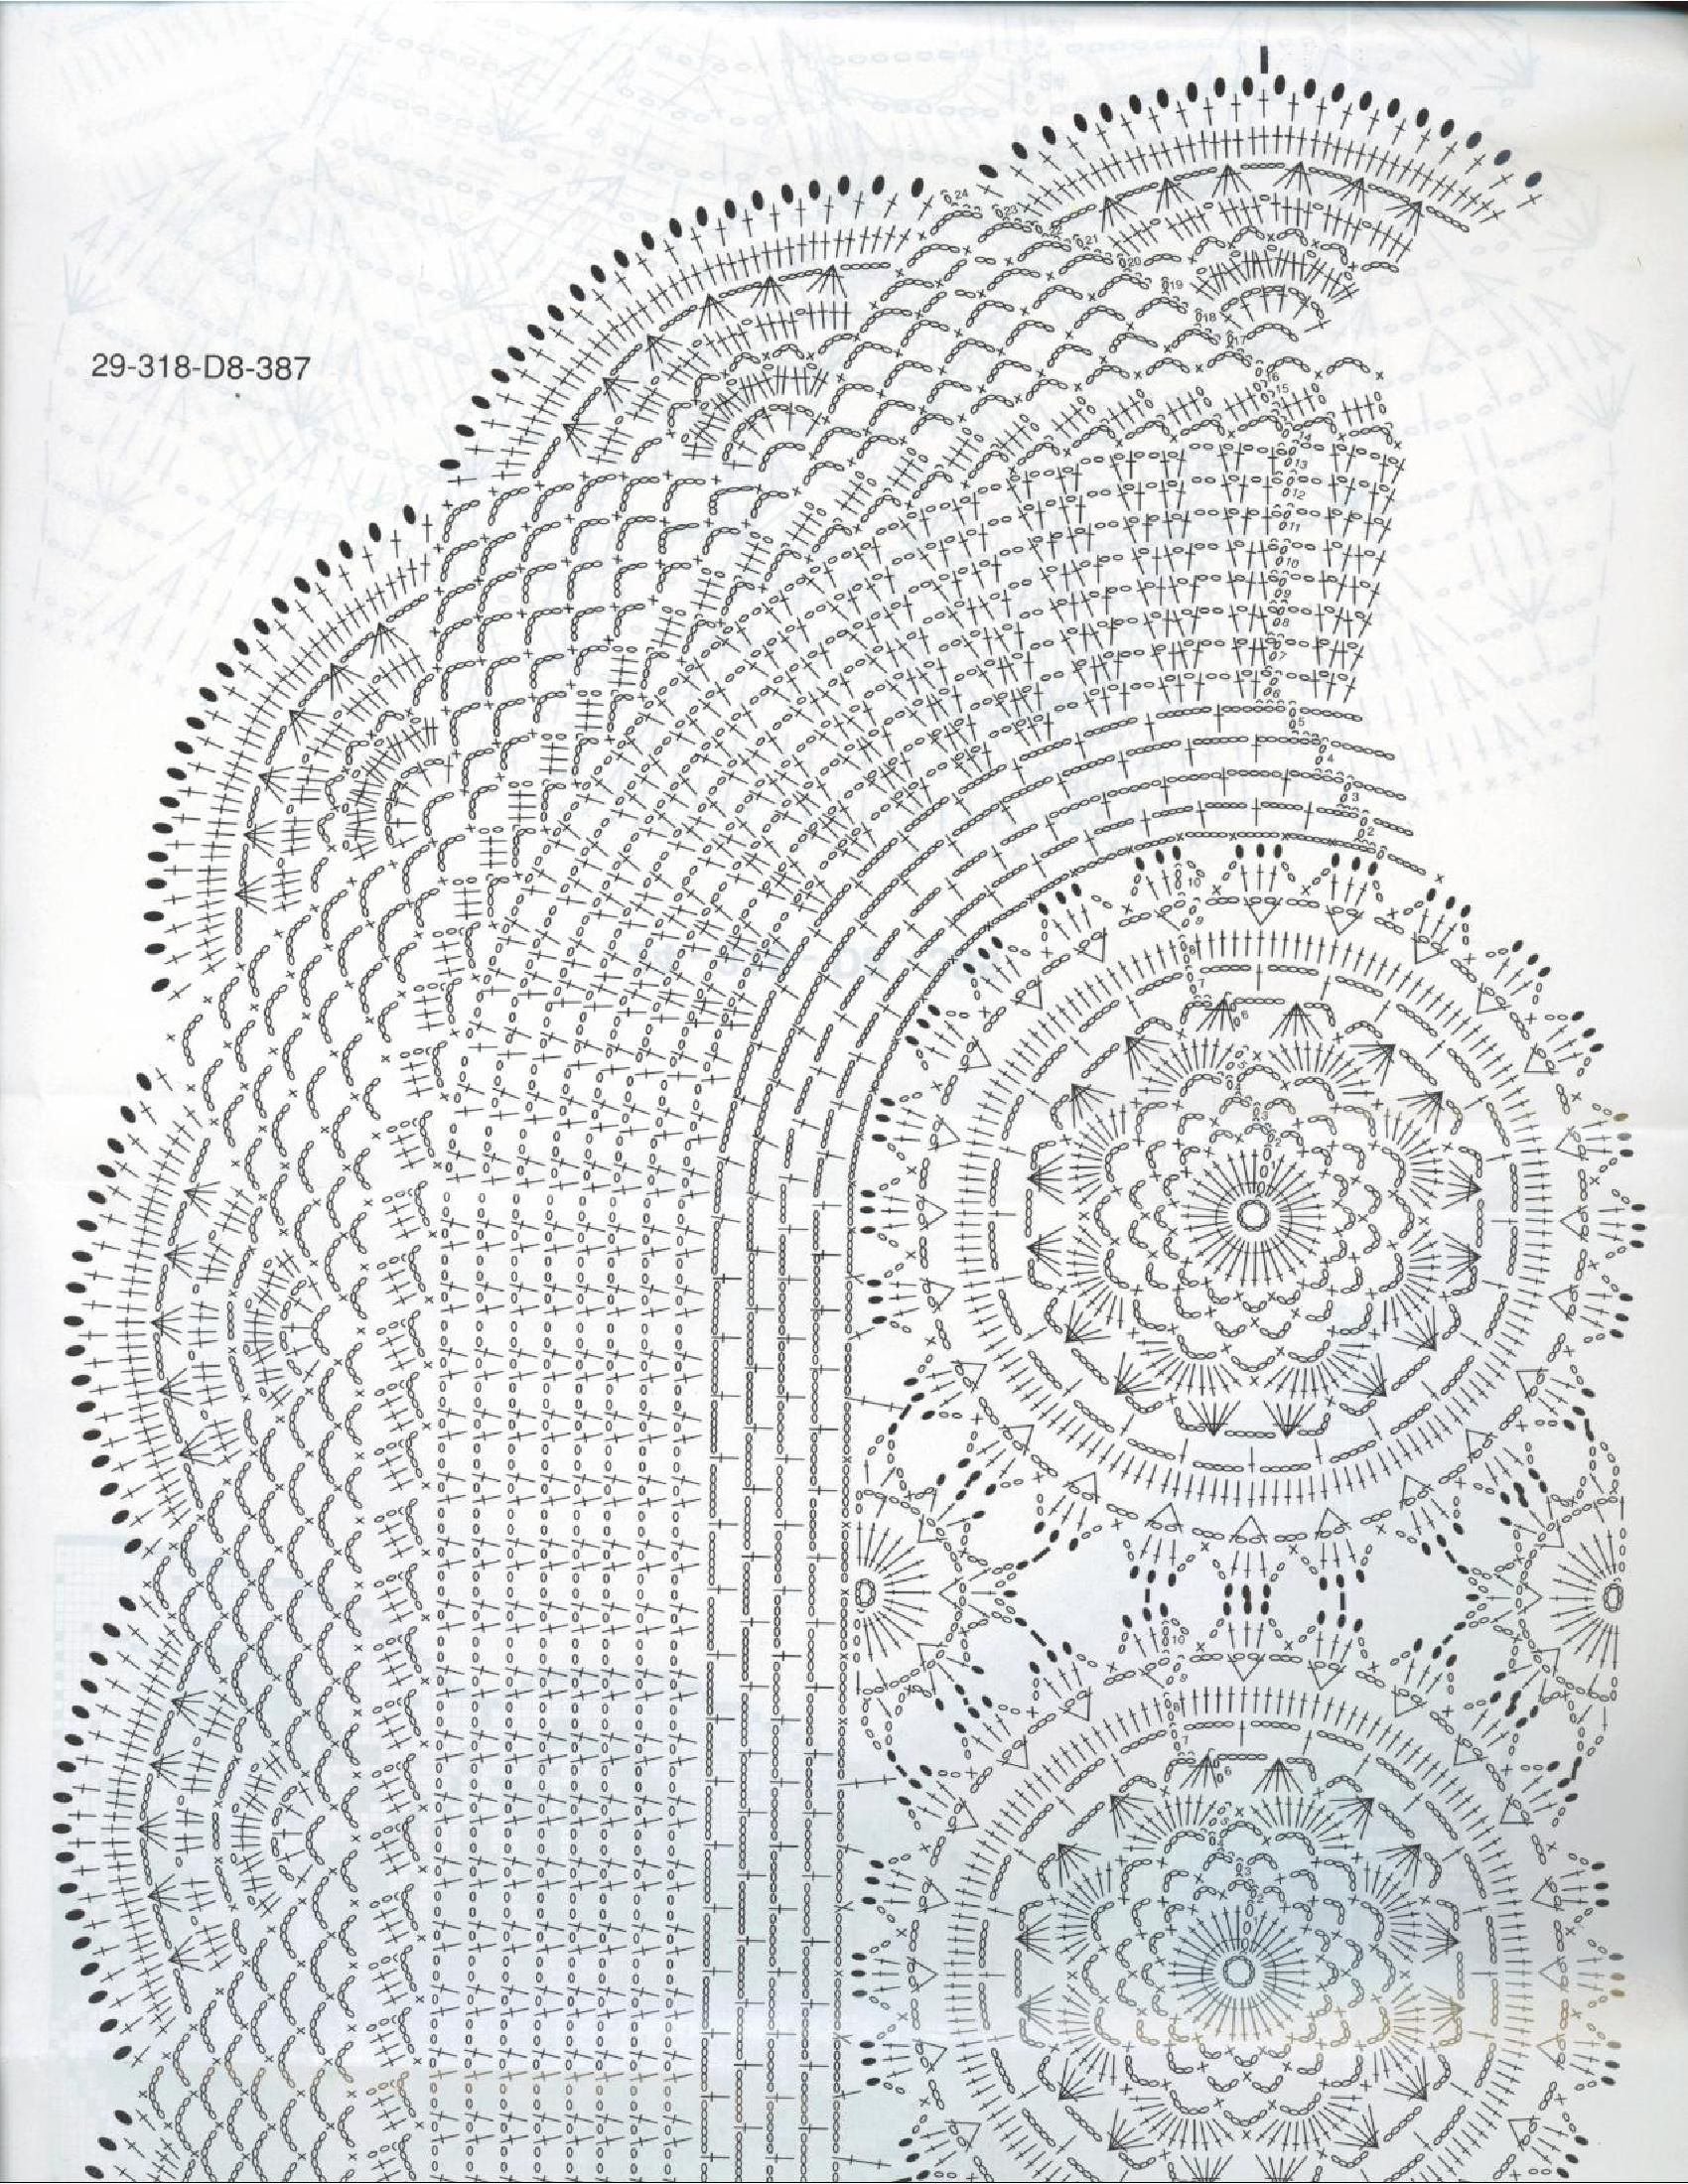 Pin By Rieqa On Doilies Pinterest Crochet And Oval Doily Diagram